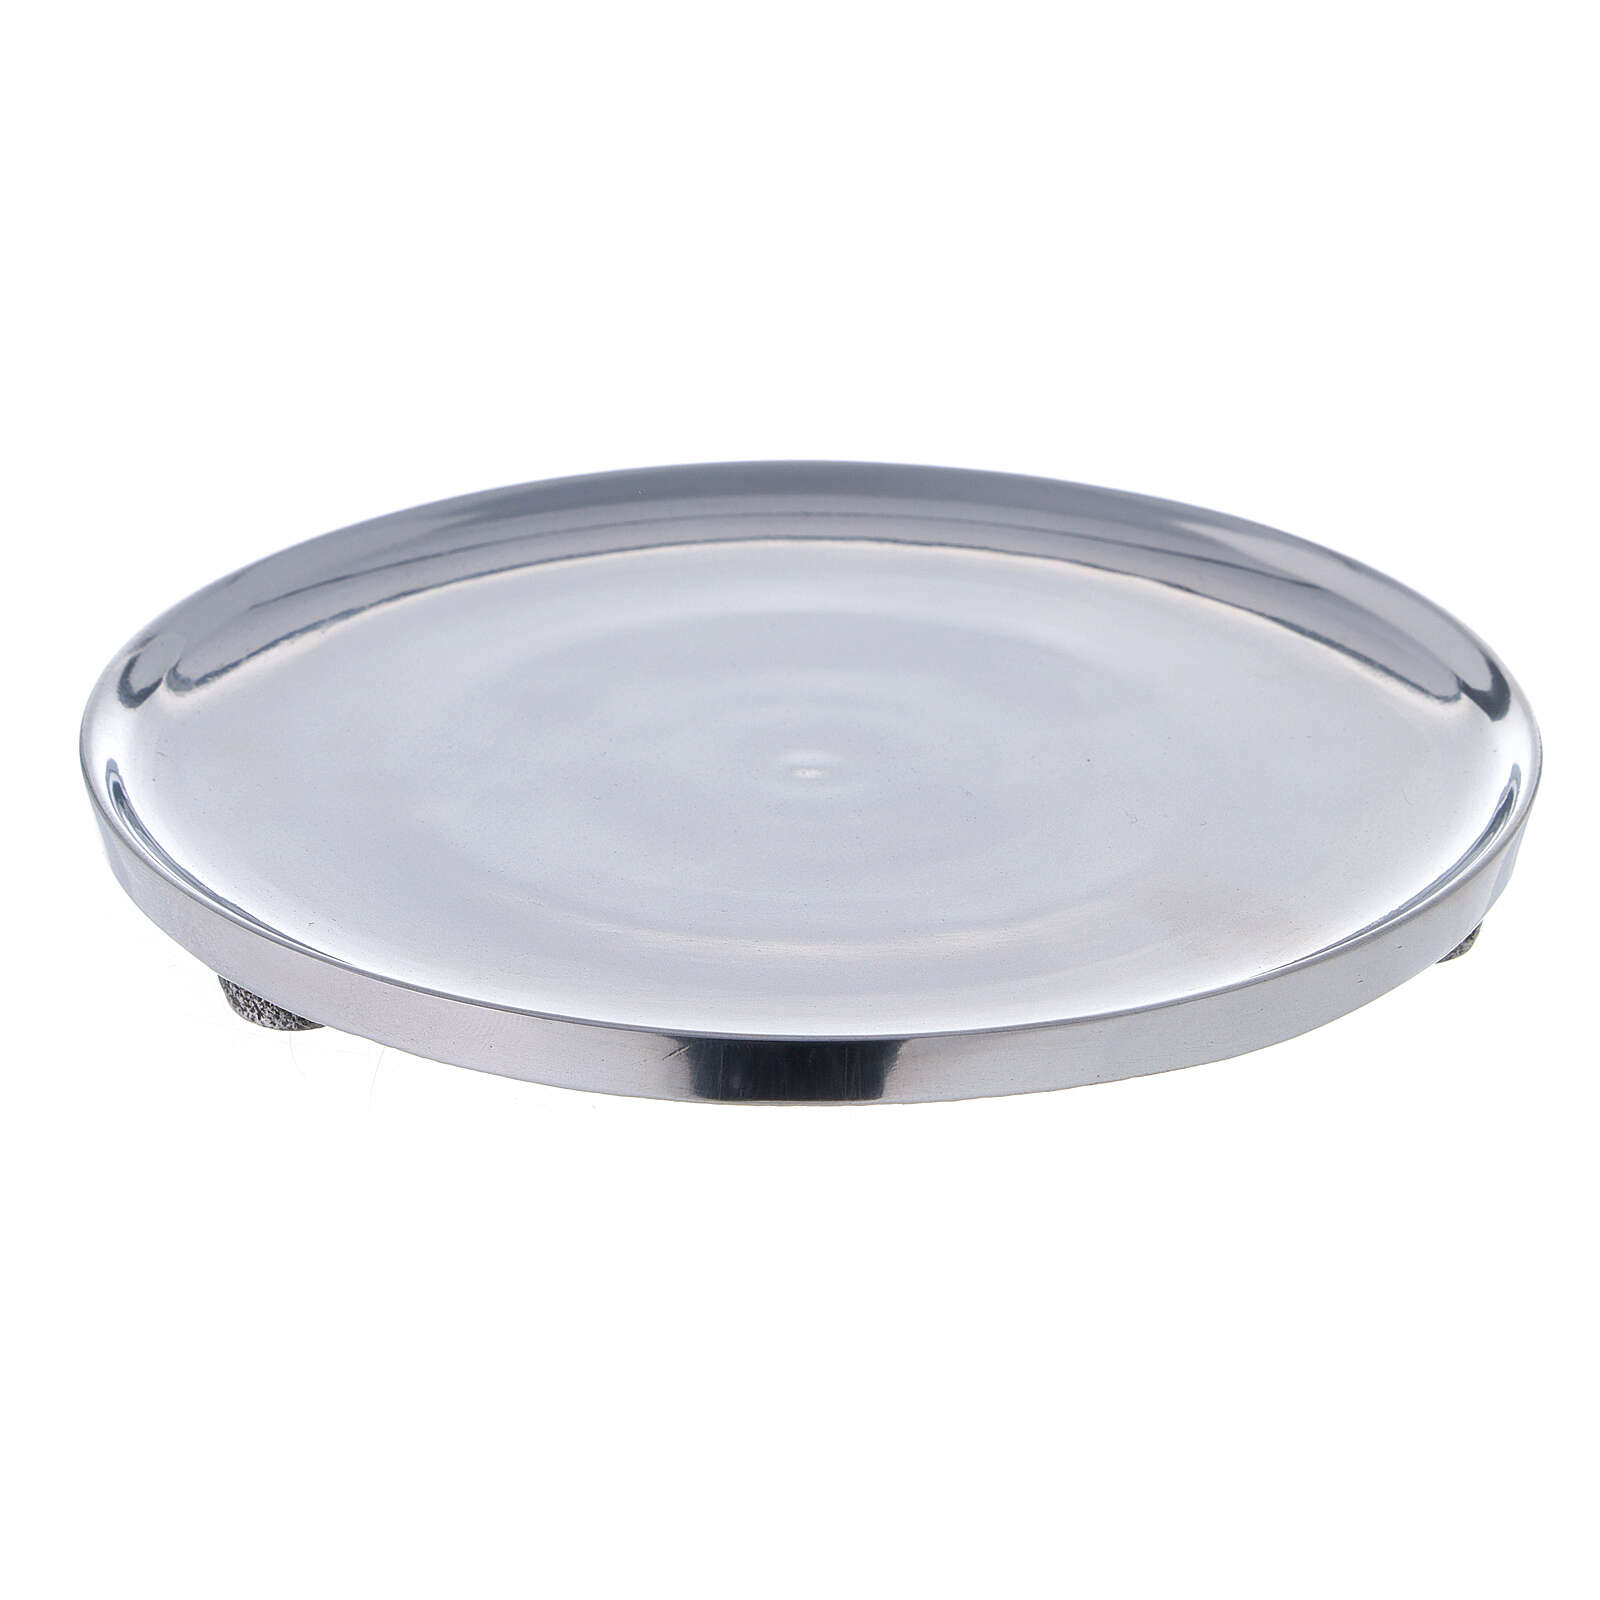 Polished aluminium candle holder plate diameter 6 3/4 in 3